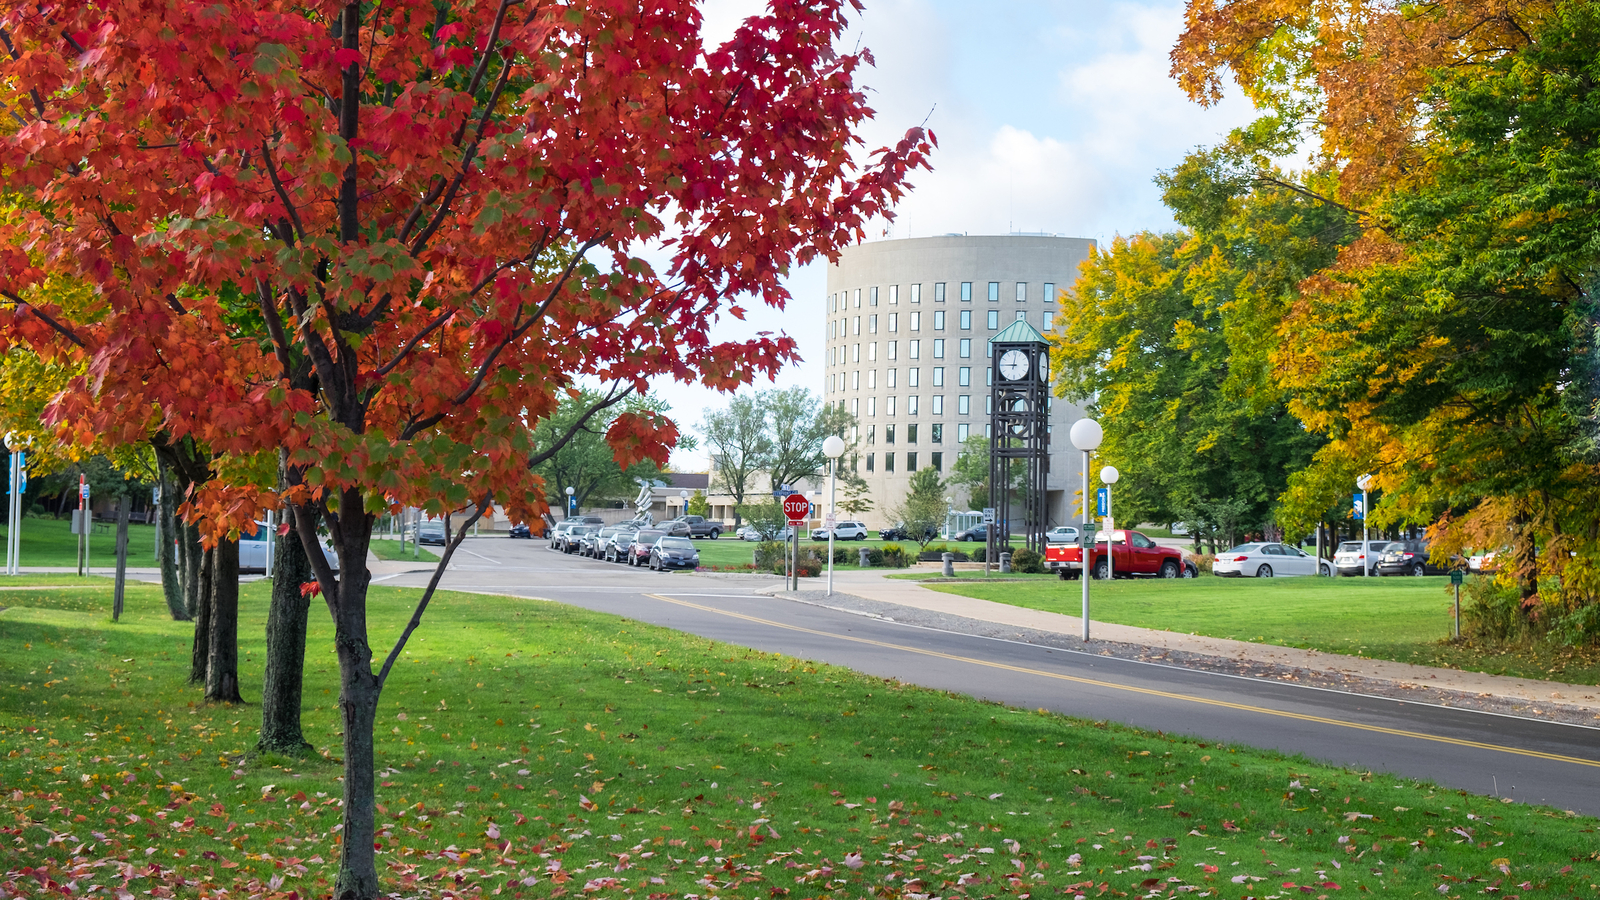 Picture of Maytum Hall with leaves on trees changing colors